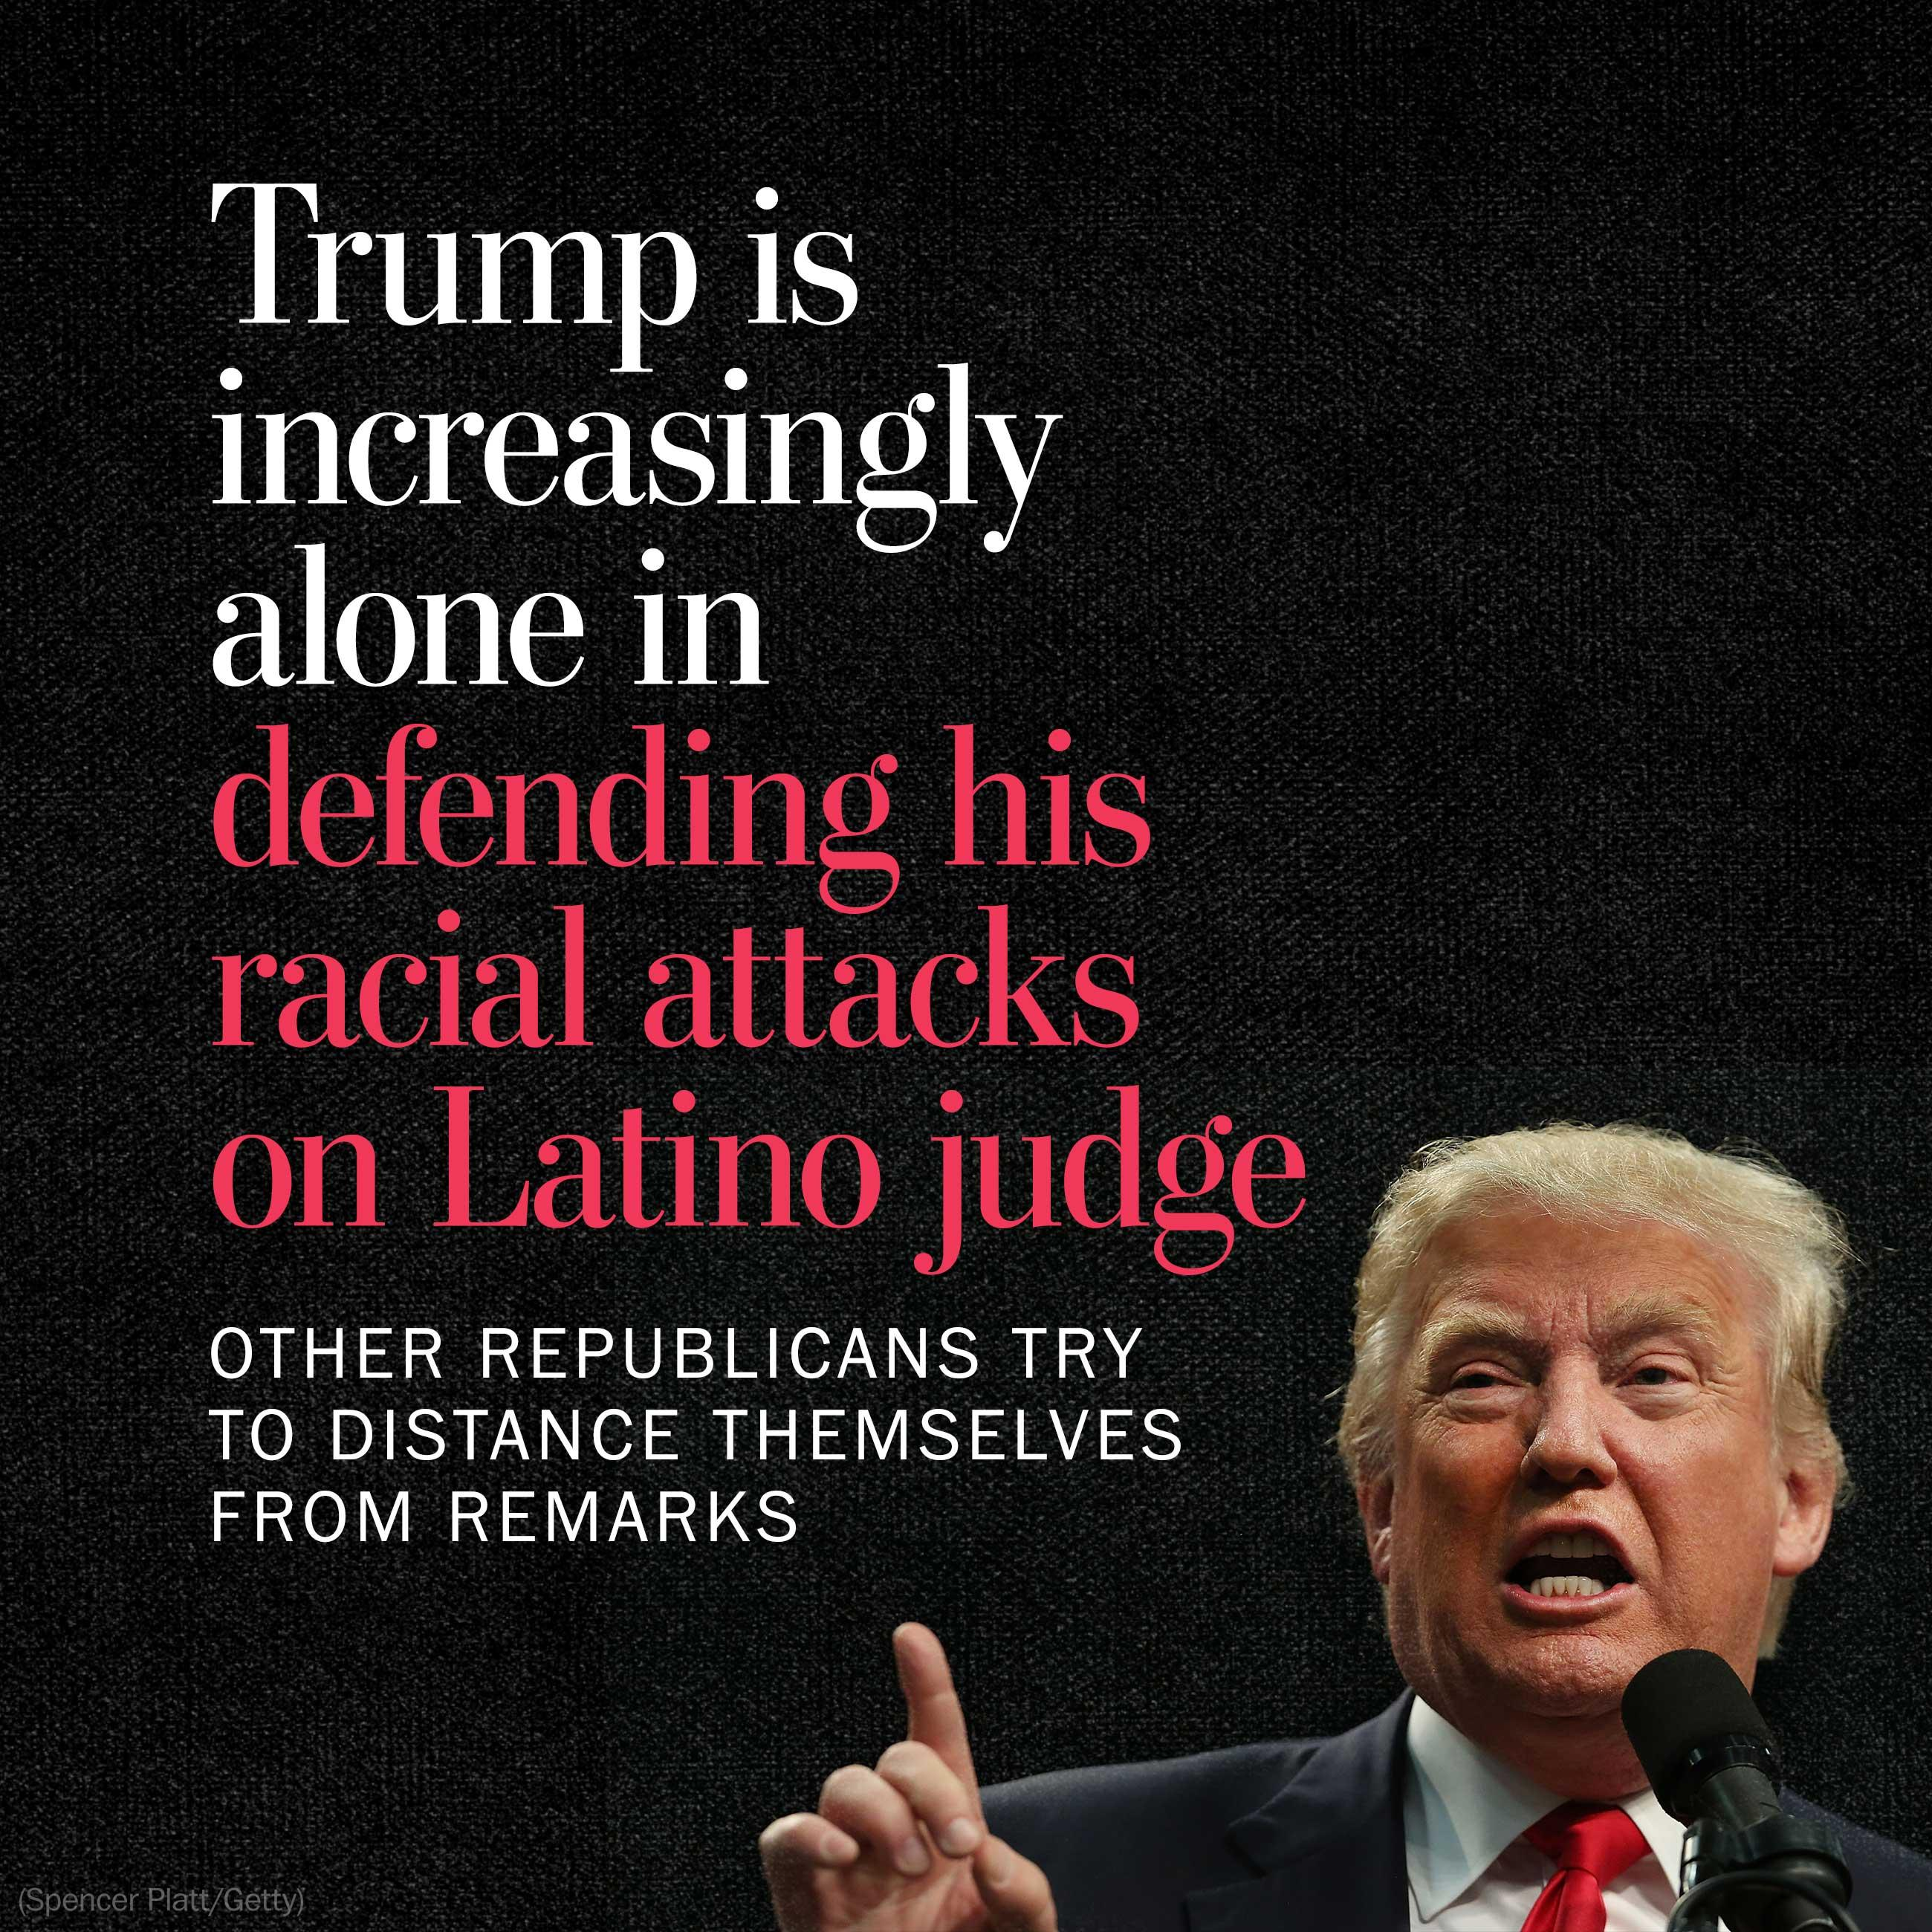 Trump increasingly alone in defending his racial attacks on Latino federal judge